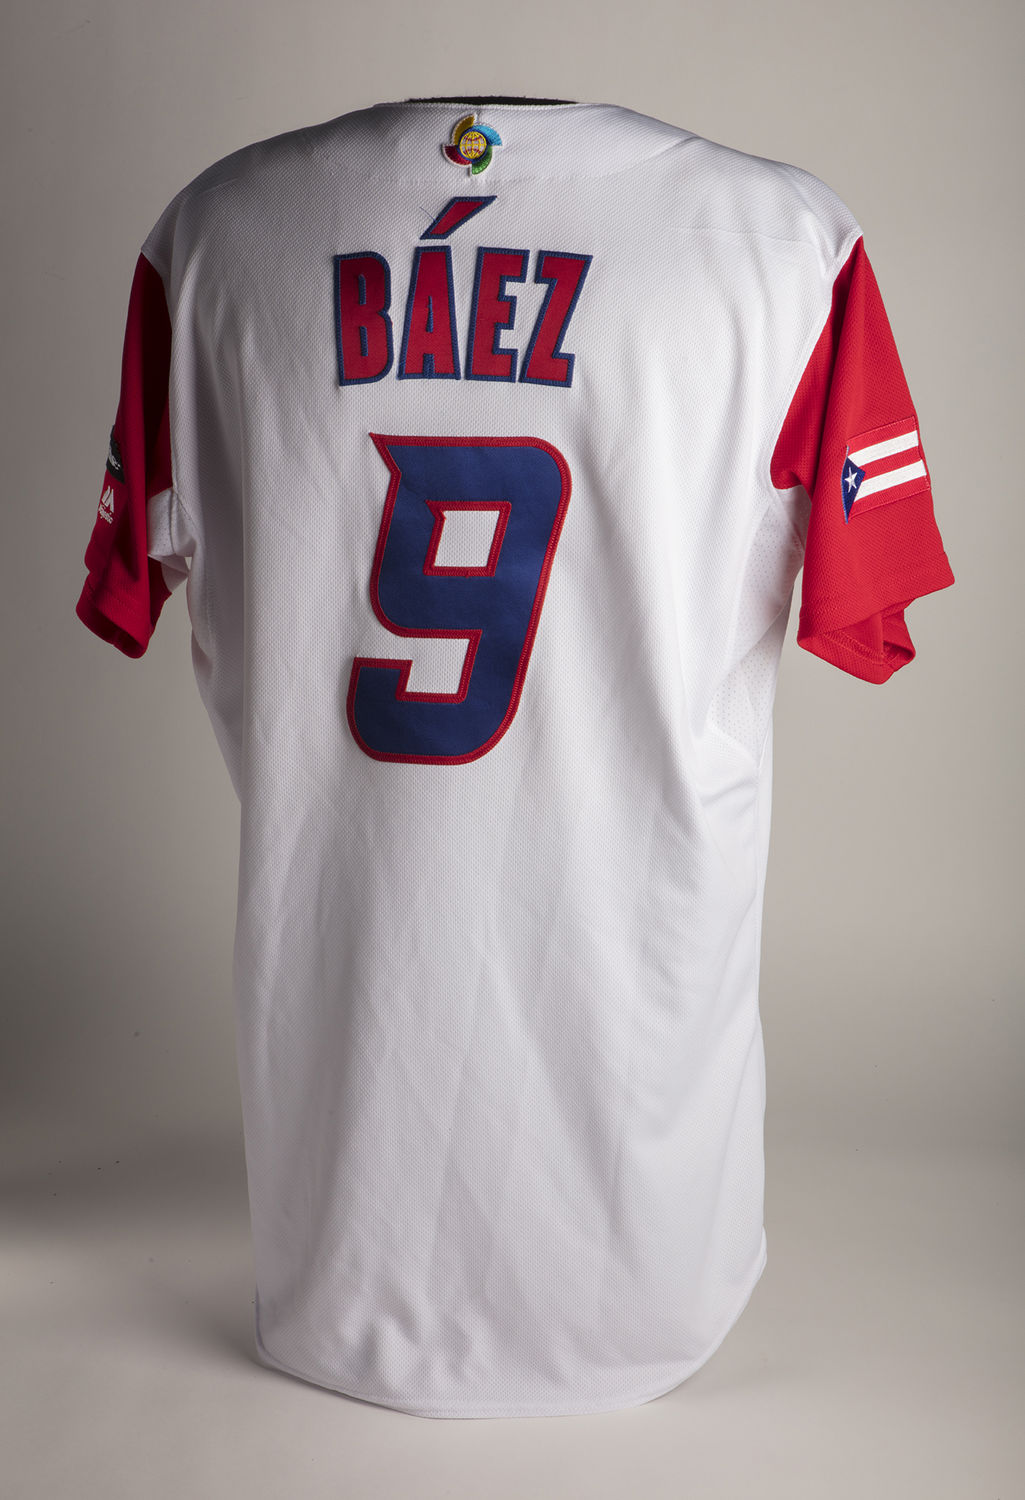 100% authentic 6b24c 0d2ab Accents on jerseys show diversity of MLB rosters | Baseball ...